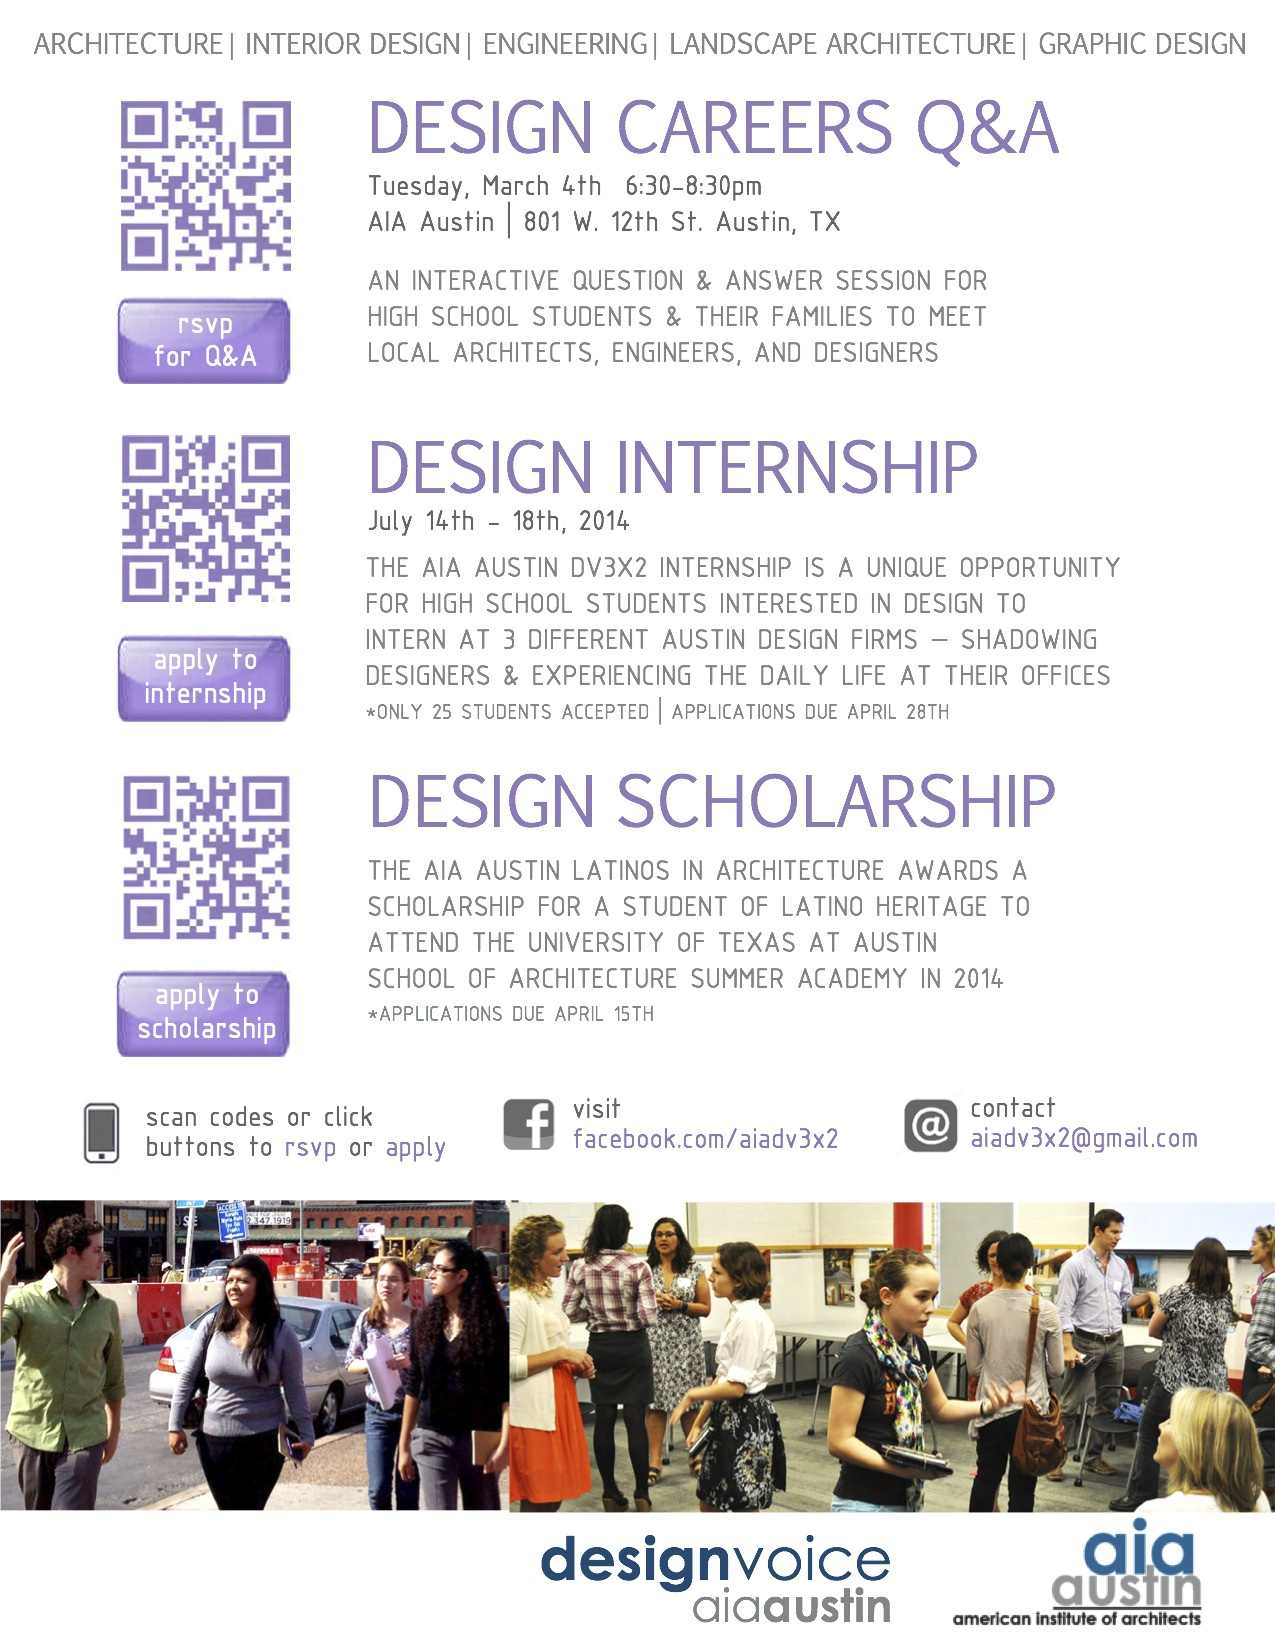 If You Are Interested Or Know Someone Who Is In Attending The Design QA Please RSVP At This Link Here A To Student Application